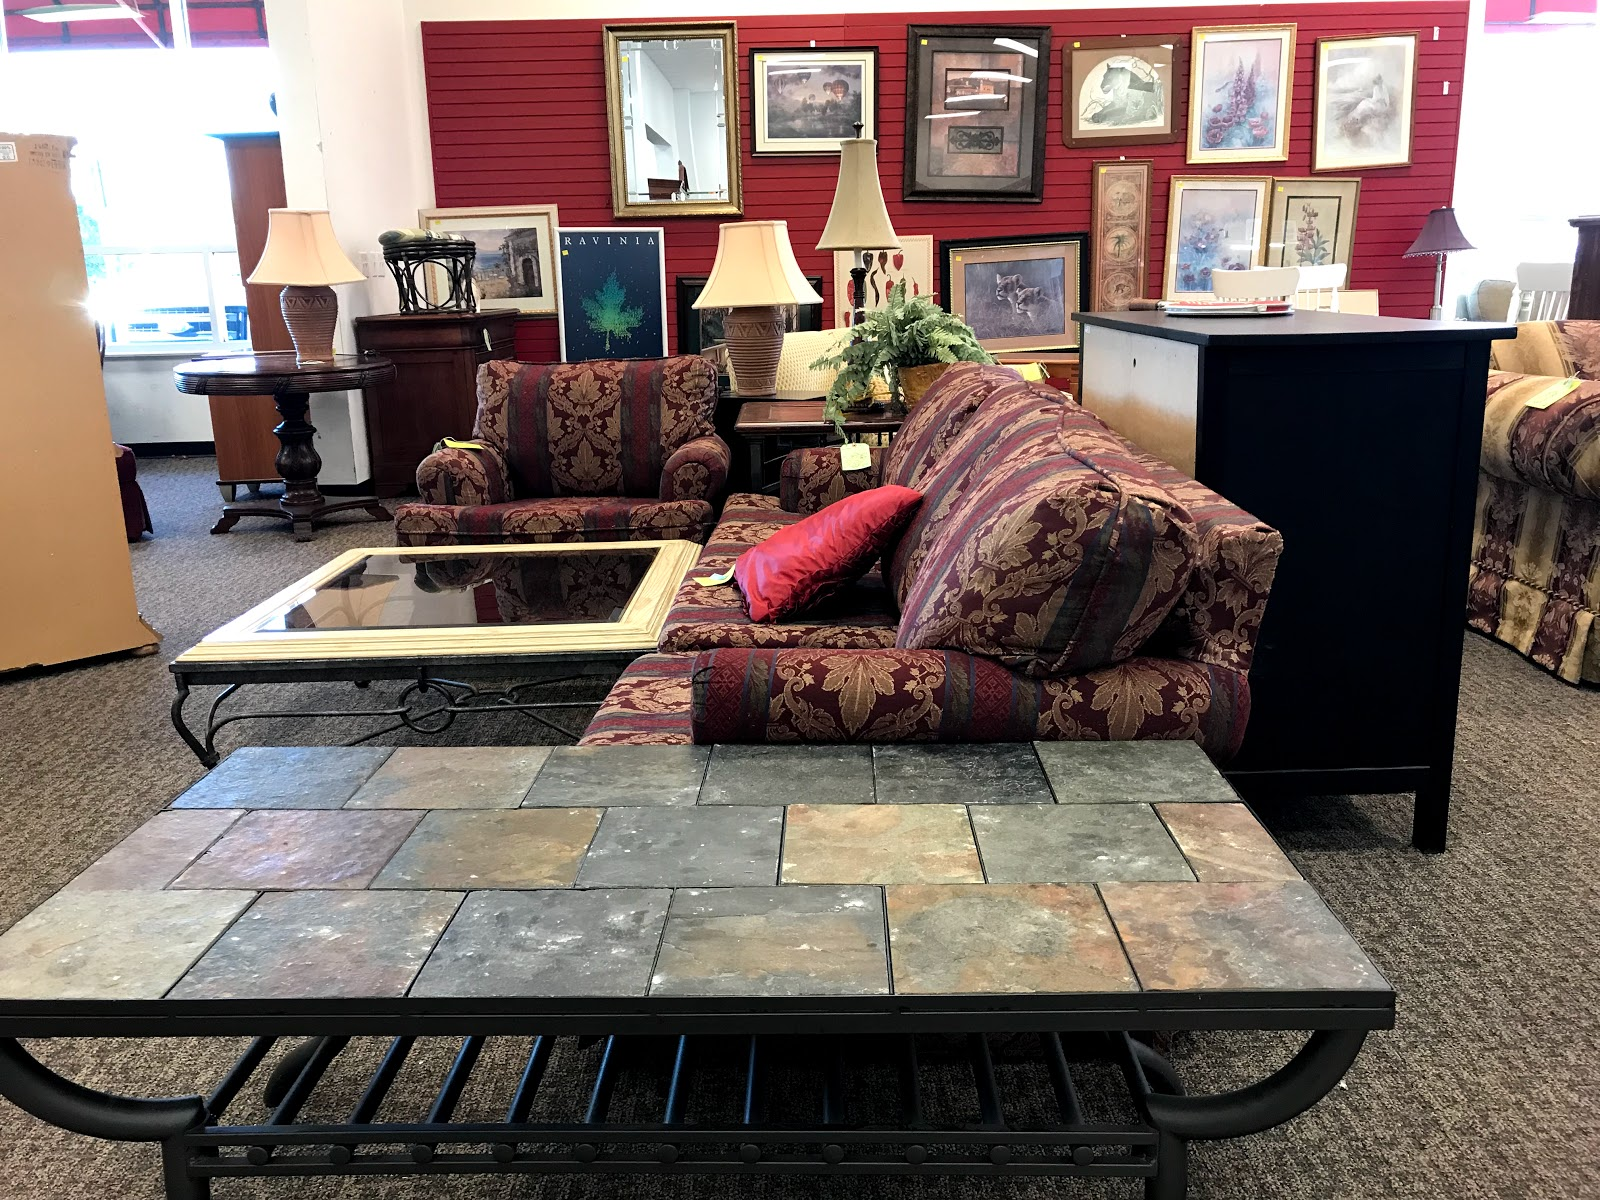 Furniture at the thrift store: Salvation Army